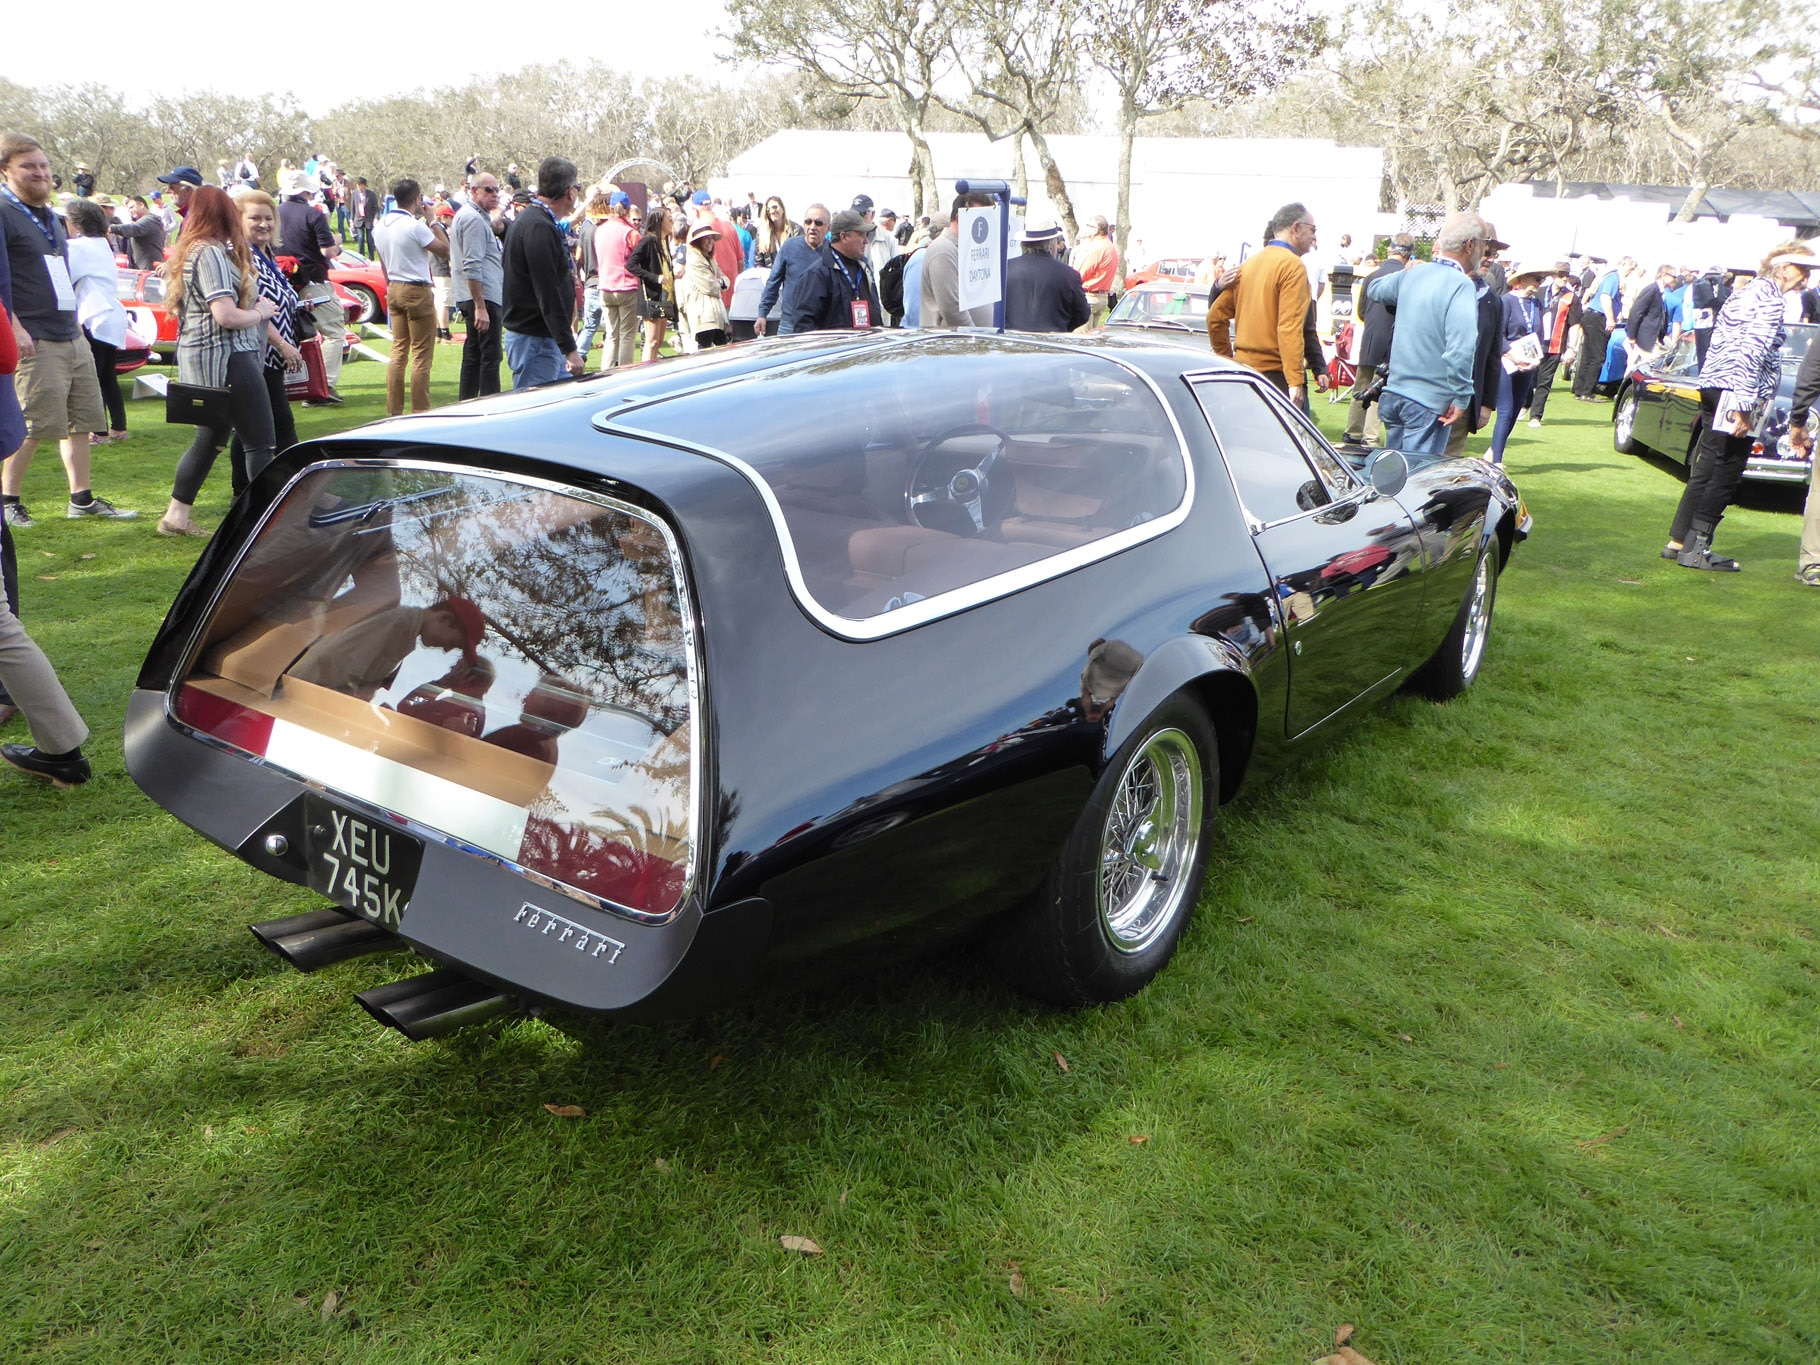 Concours D Elegance >> 11 Amazing Cars From The 2018 Amelia Island Concours D Elegance